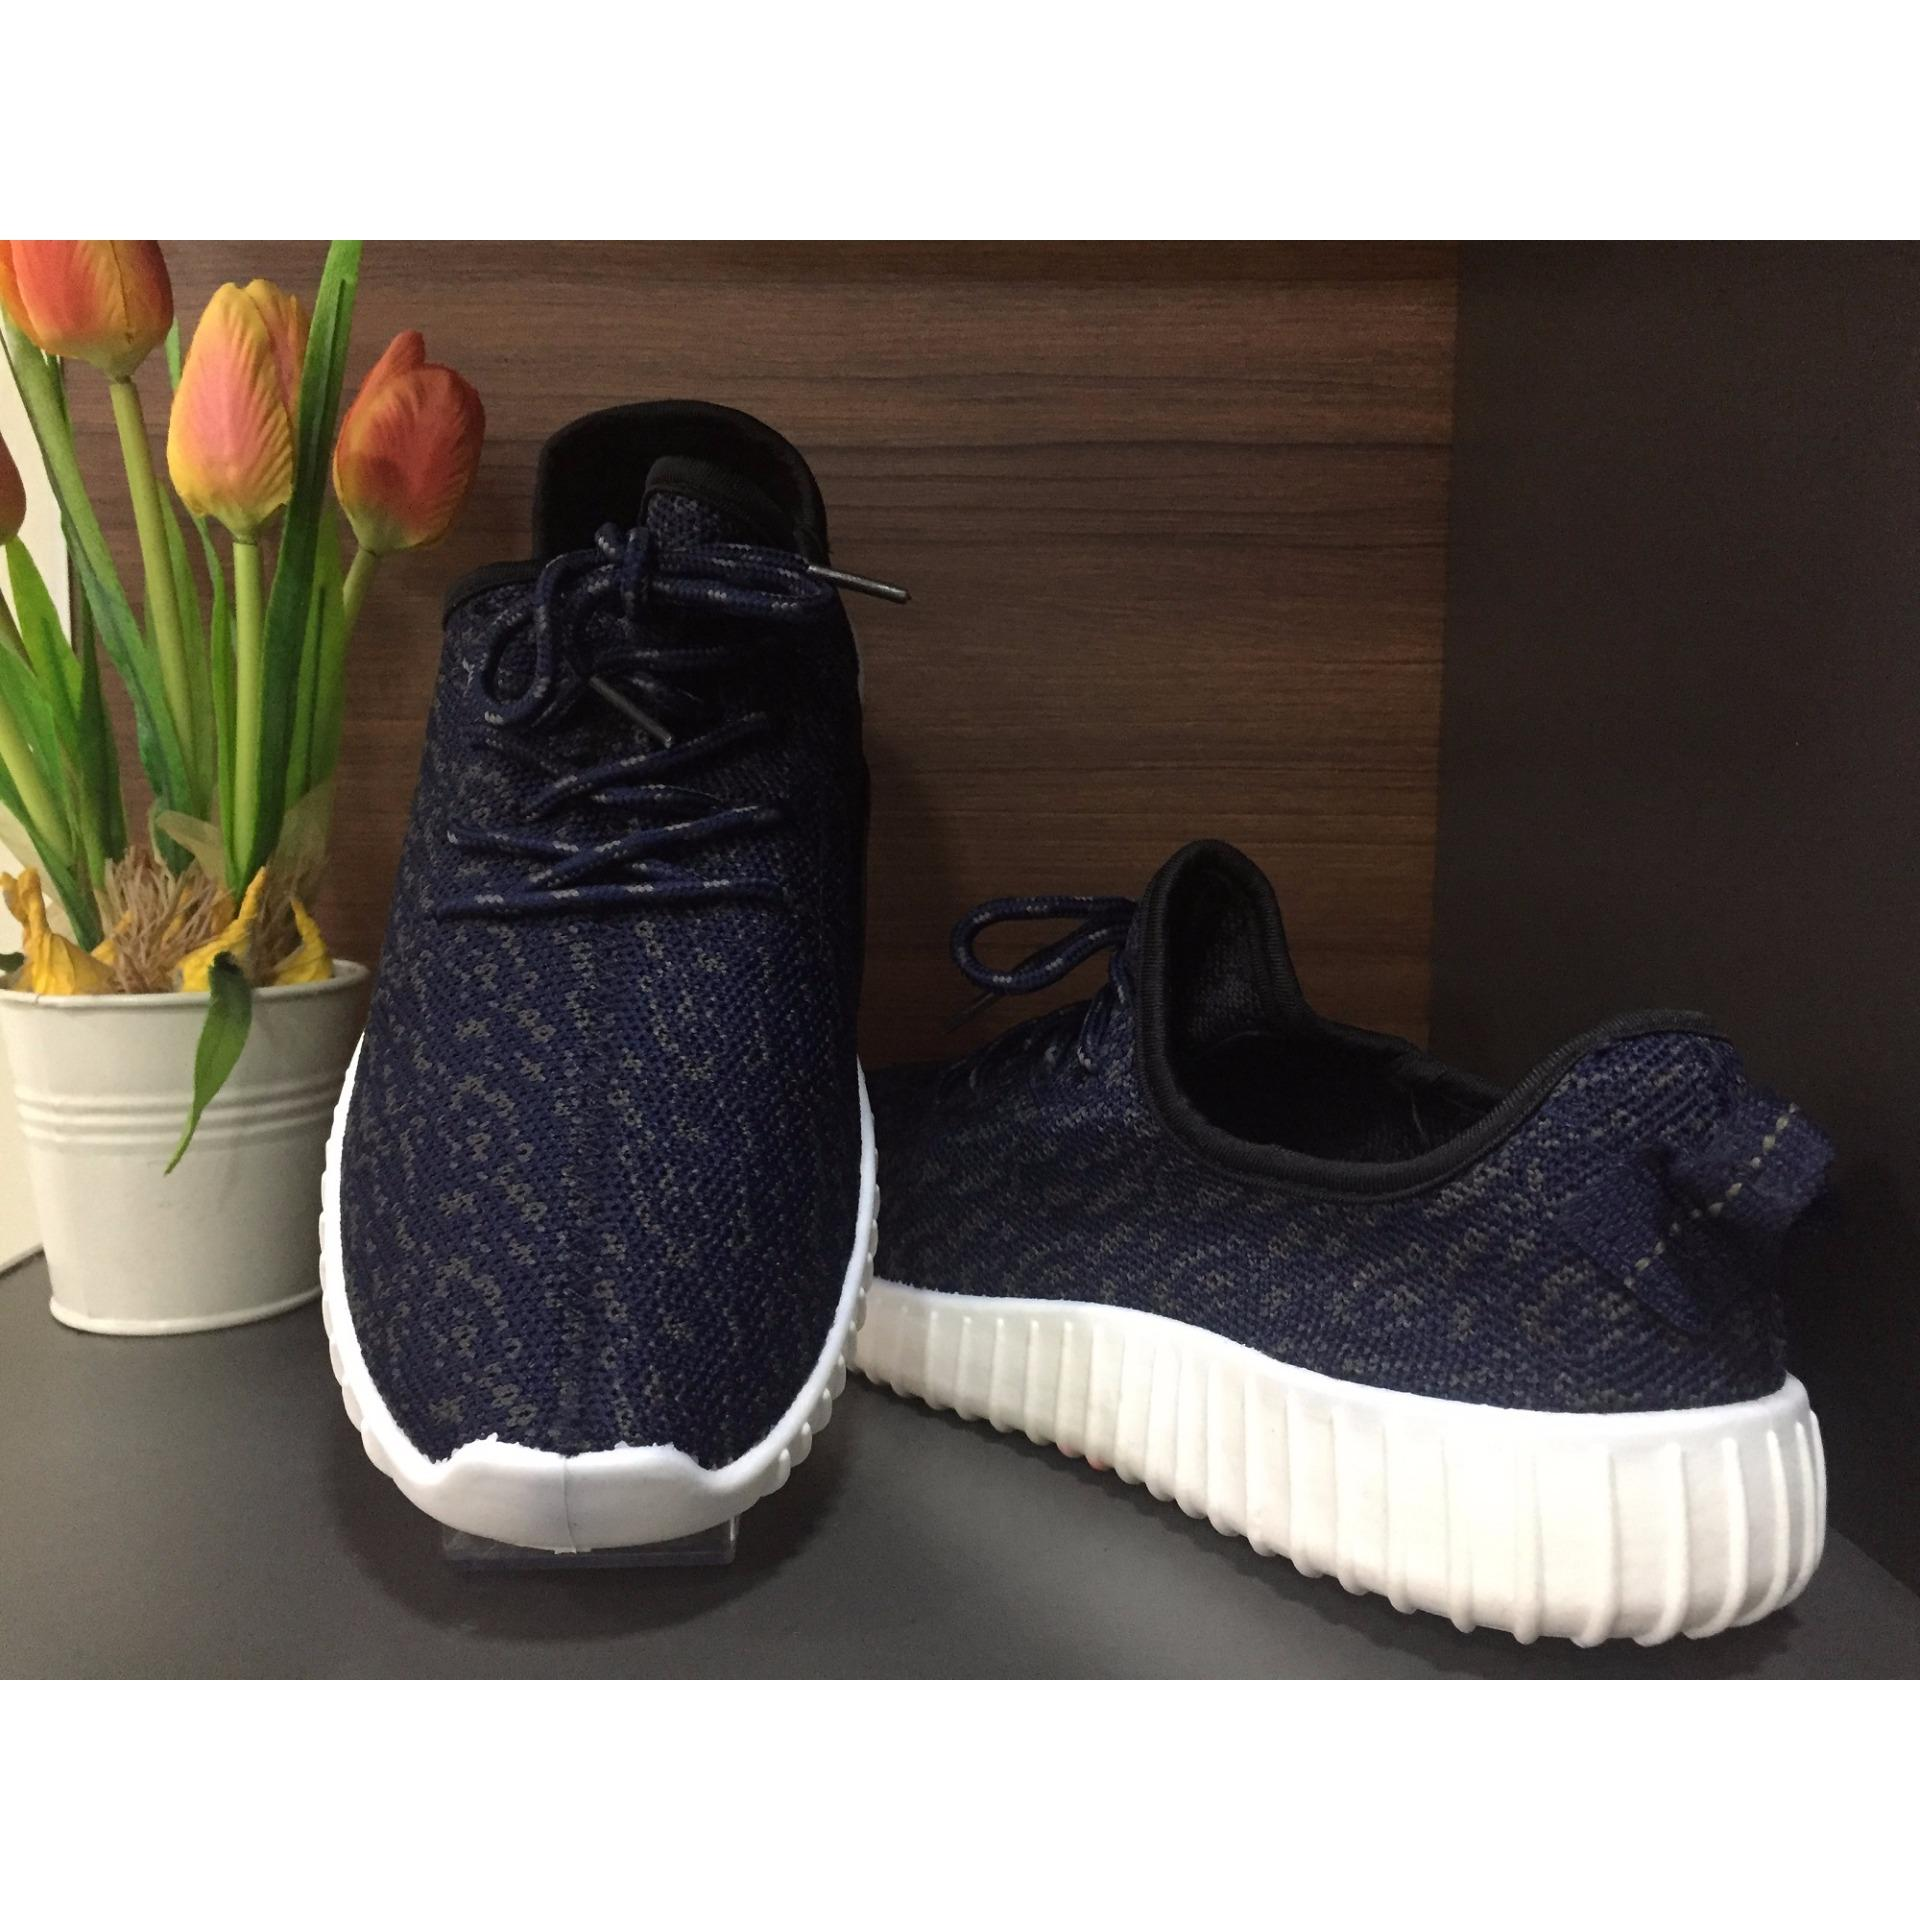 Sneakers Import Korea -270 Navy